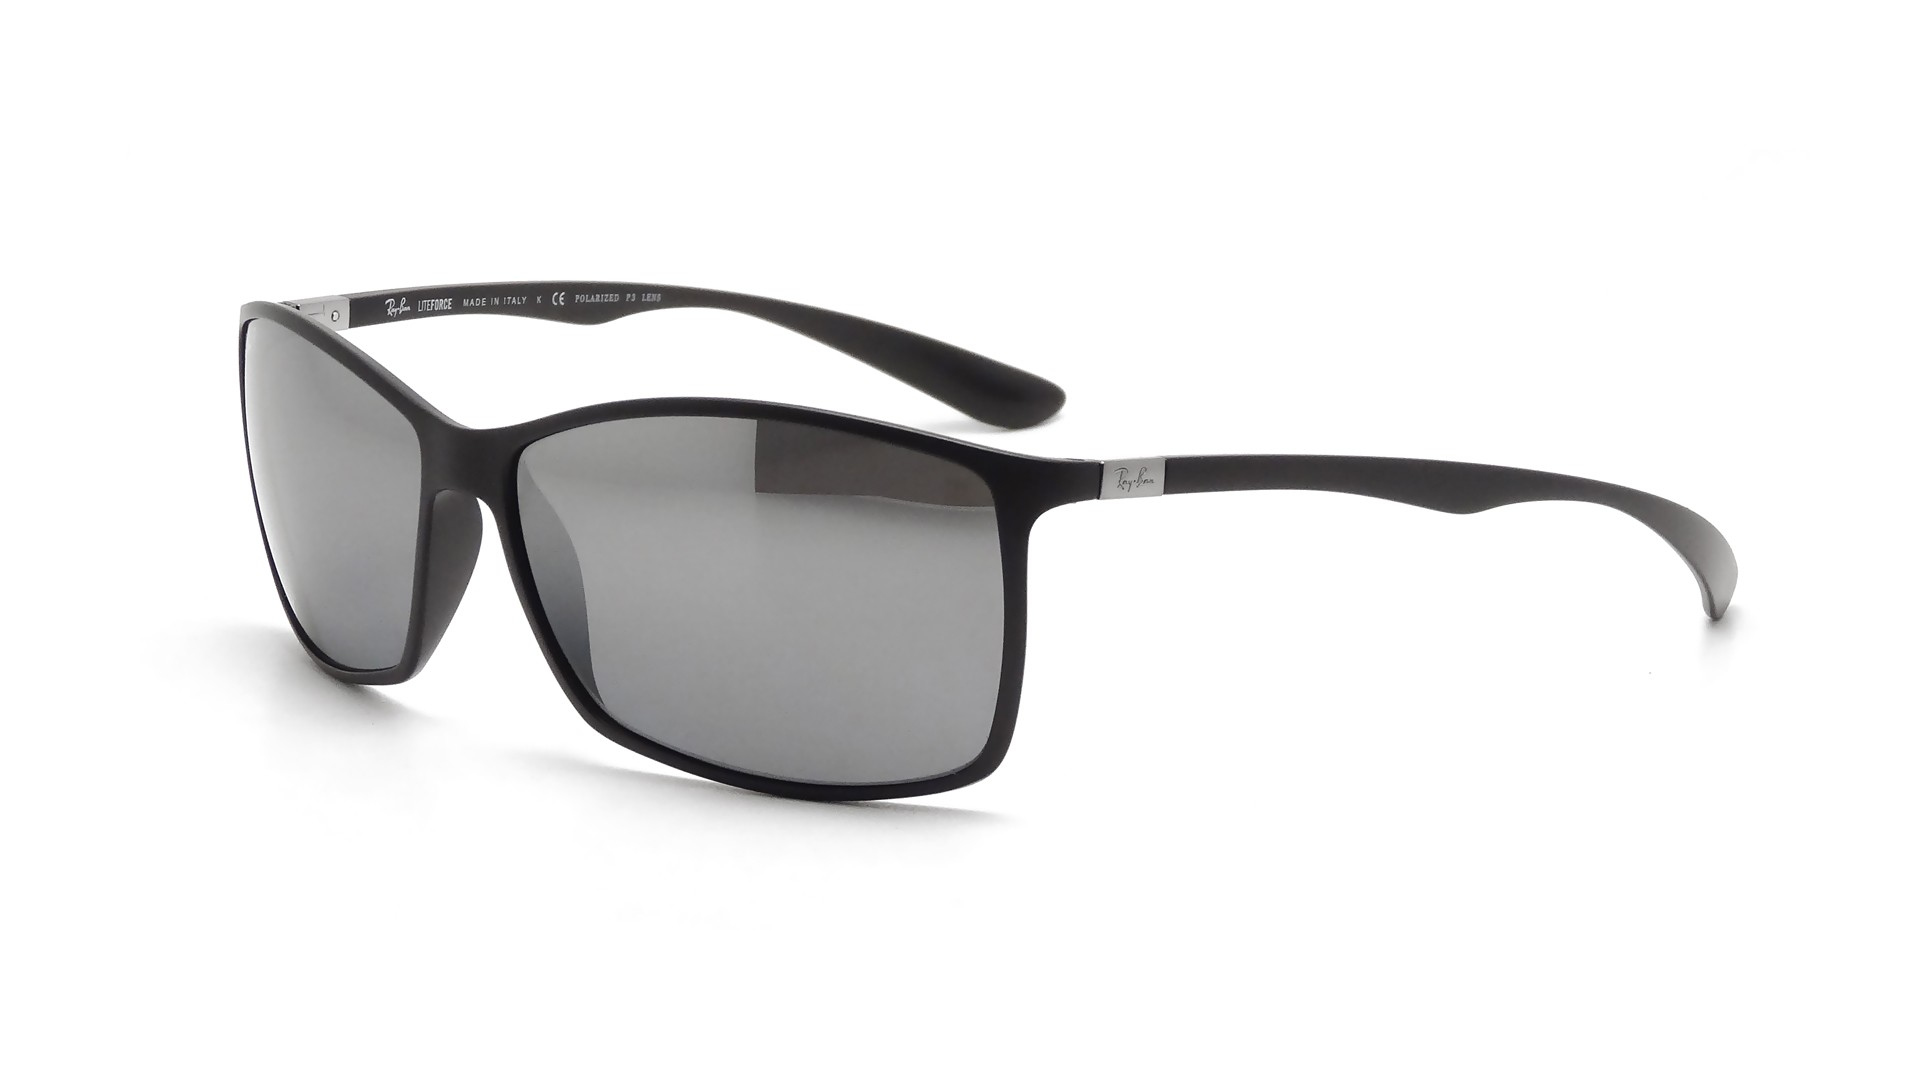 e39bc362ad0a7 Sunglasses Ray-Ban Tech Liteforce Black Matte RB4179 601S 82 62-15 Large  Polarized Mirror